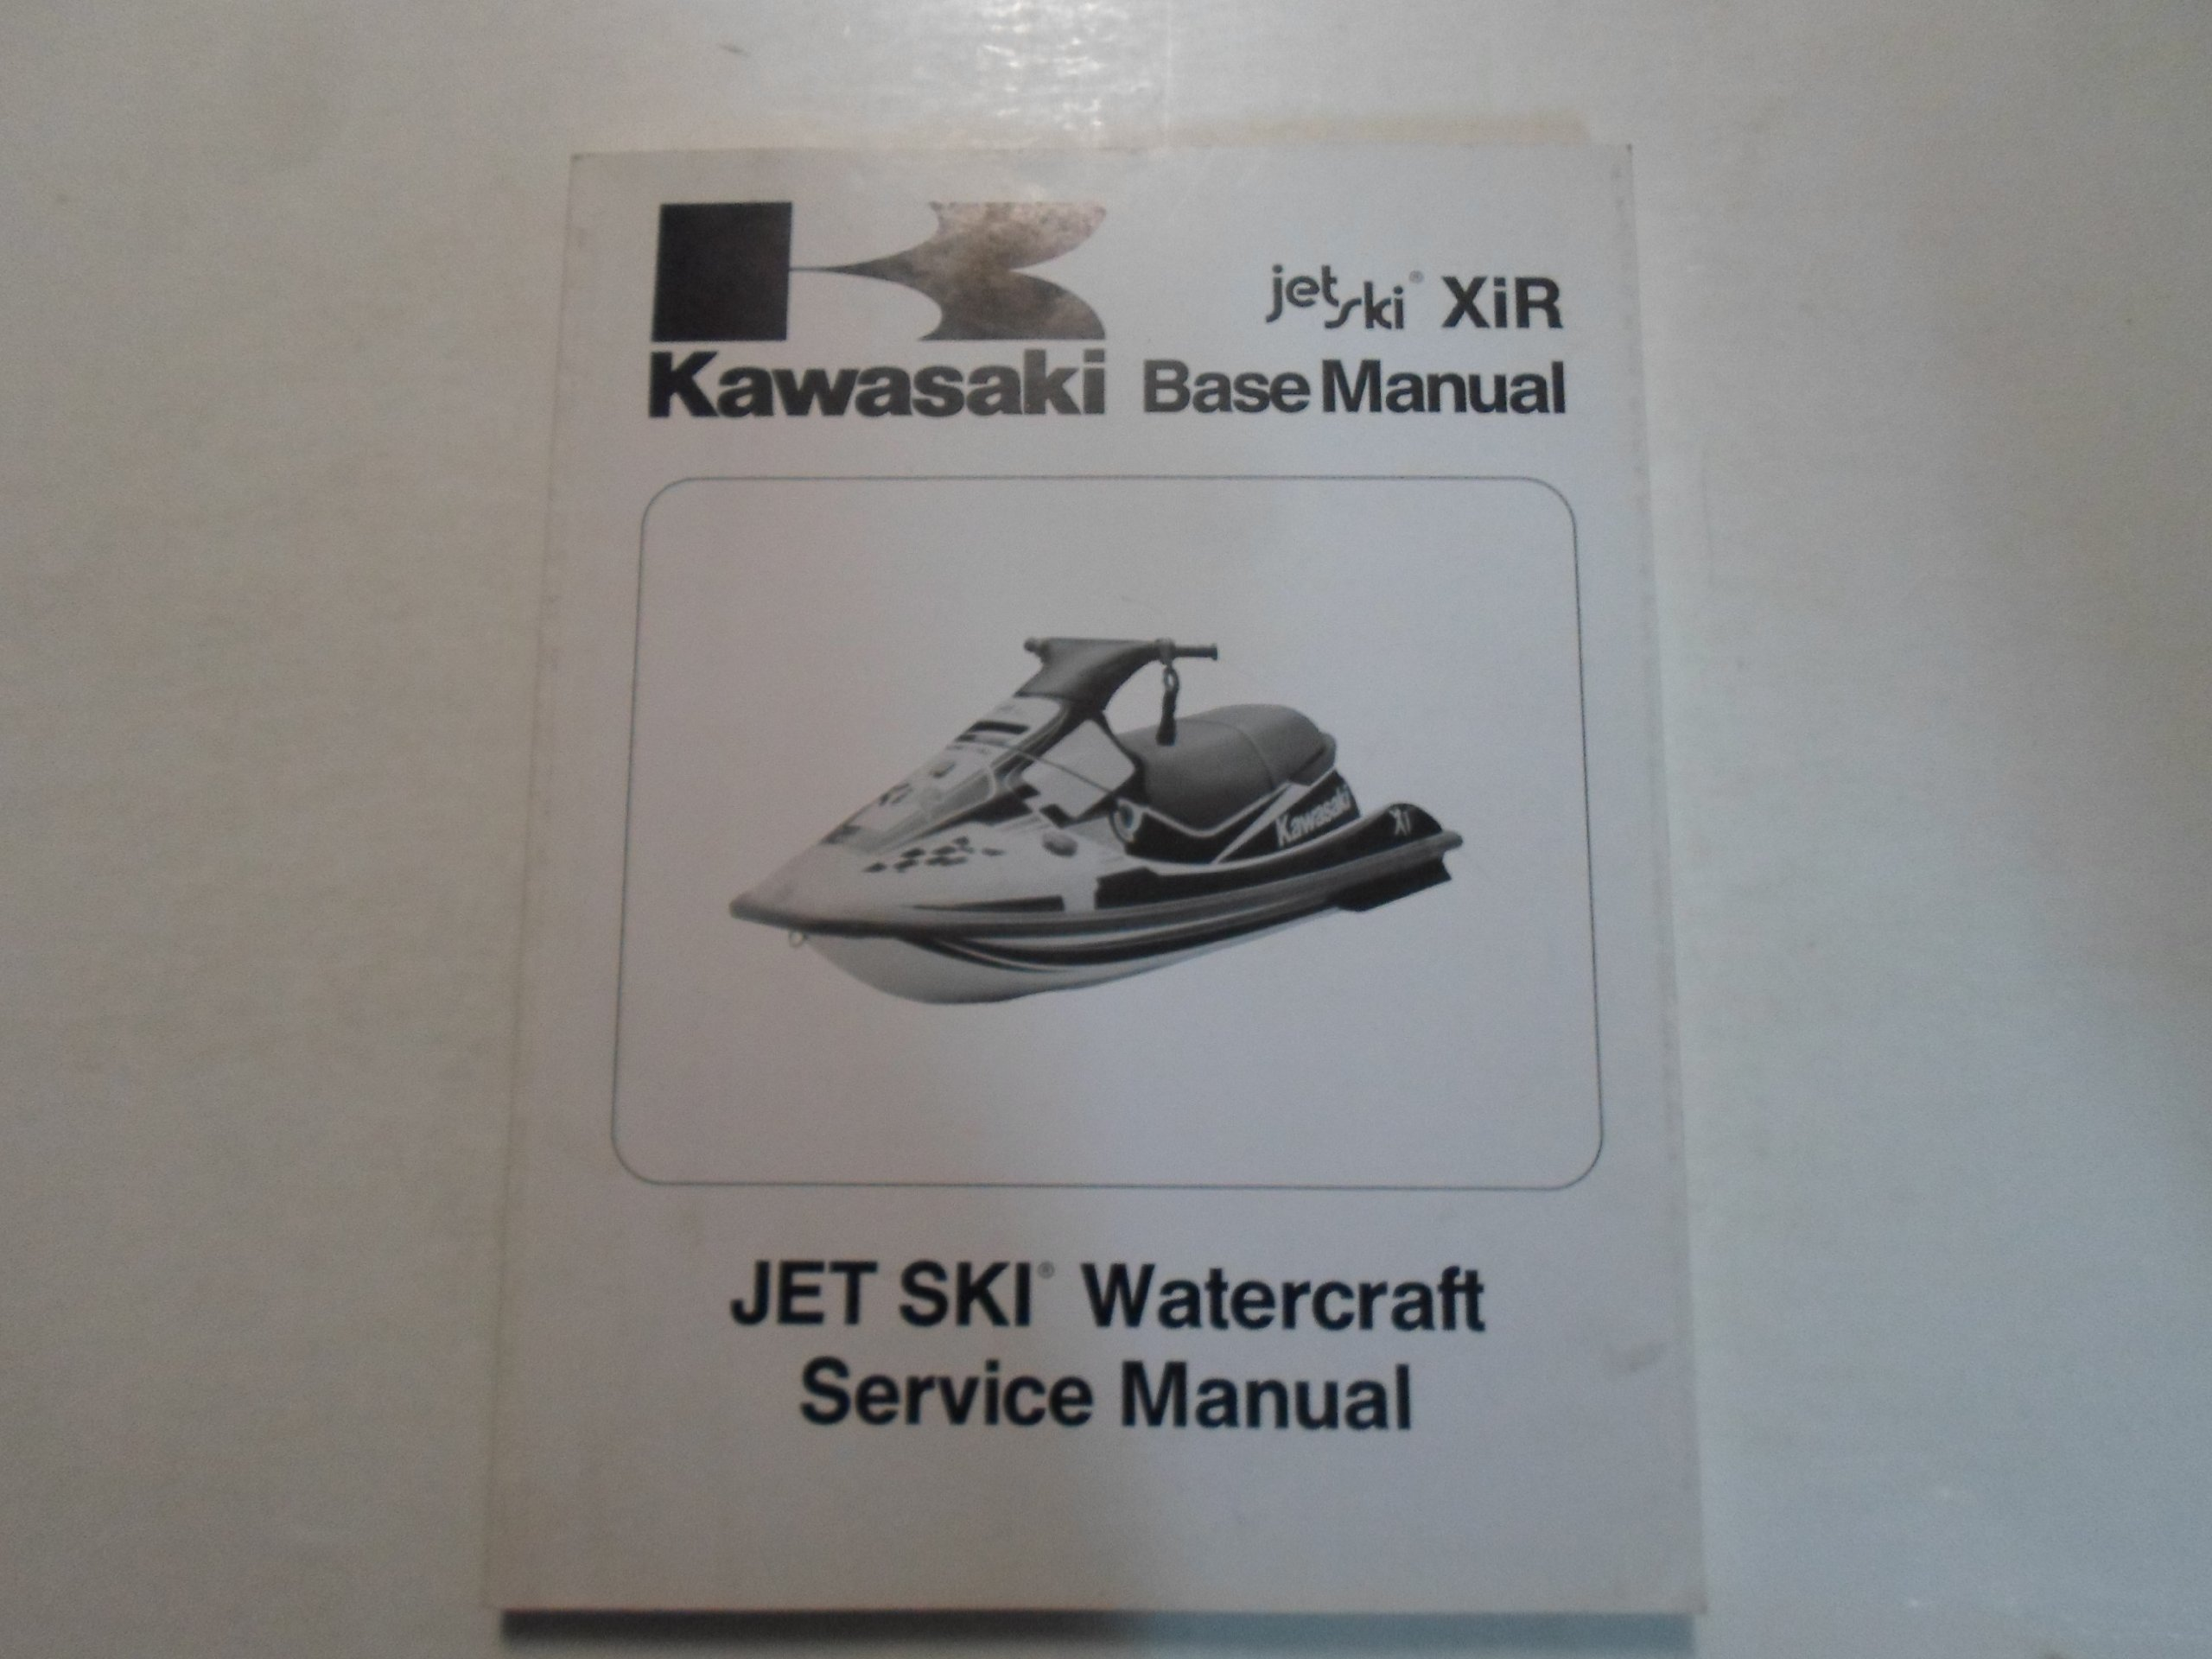 1994 Kawasaki XiR Base Manual Jet Ski Watercraft Service Manual STAINED WORN:  KAWASAKI: Amazon.com: Books